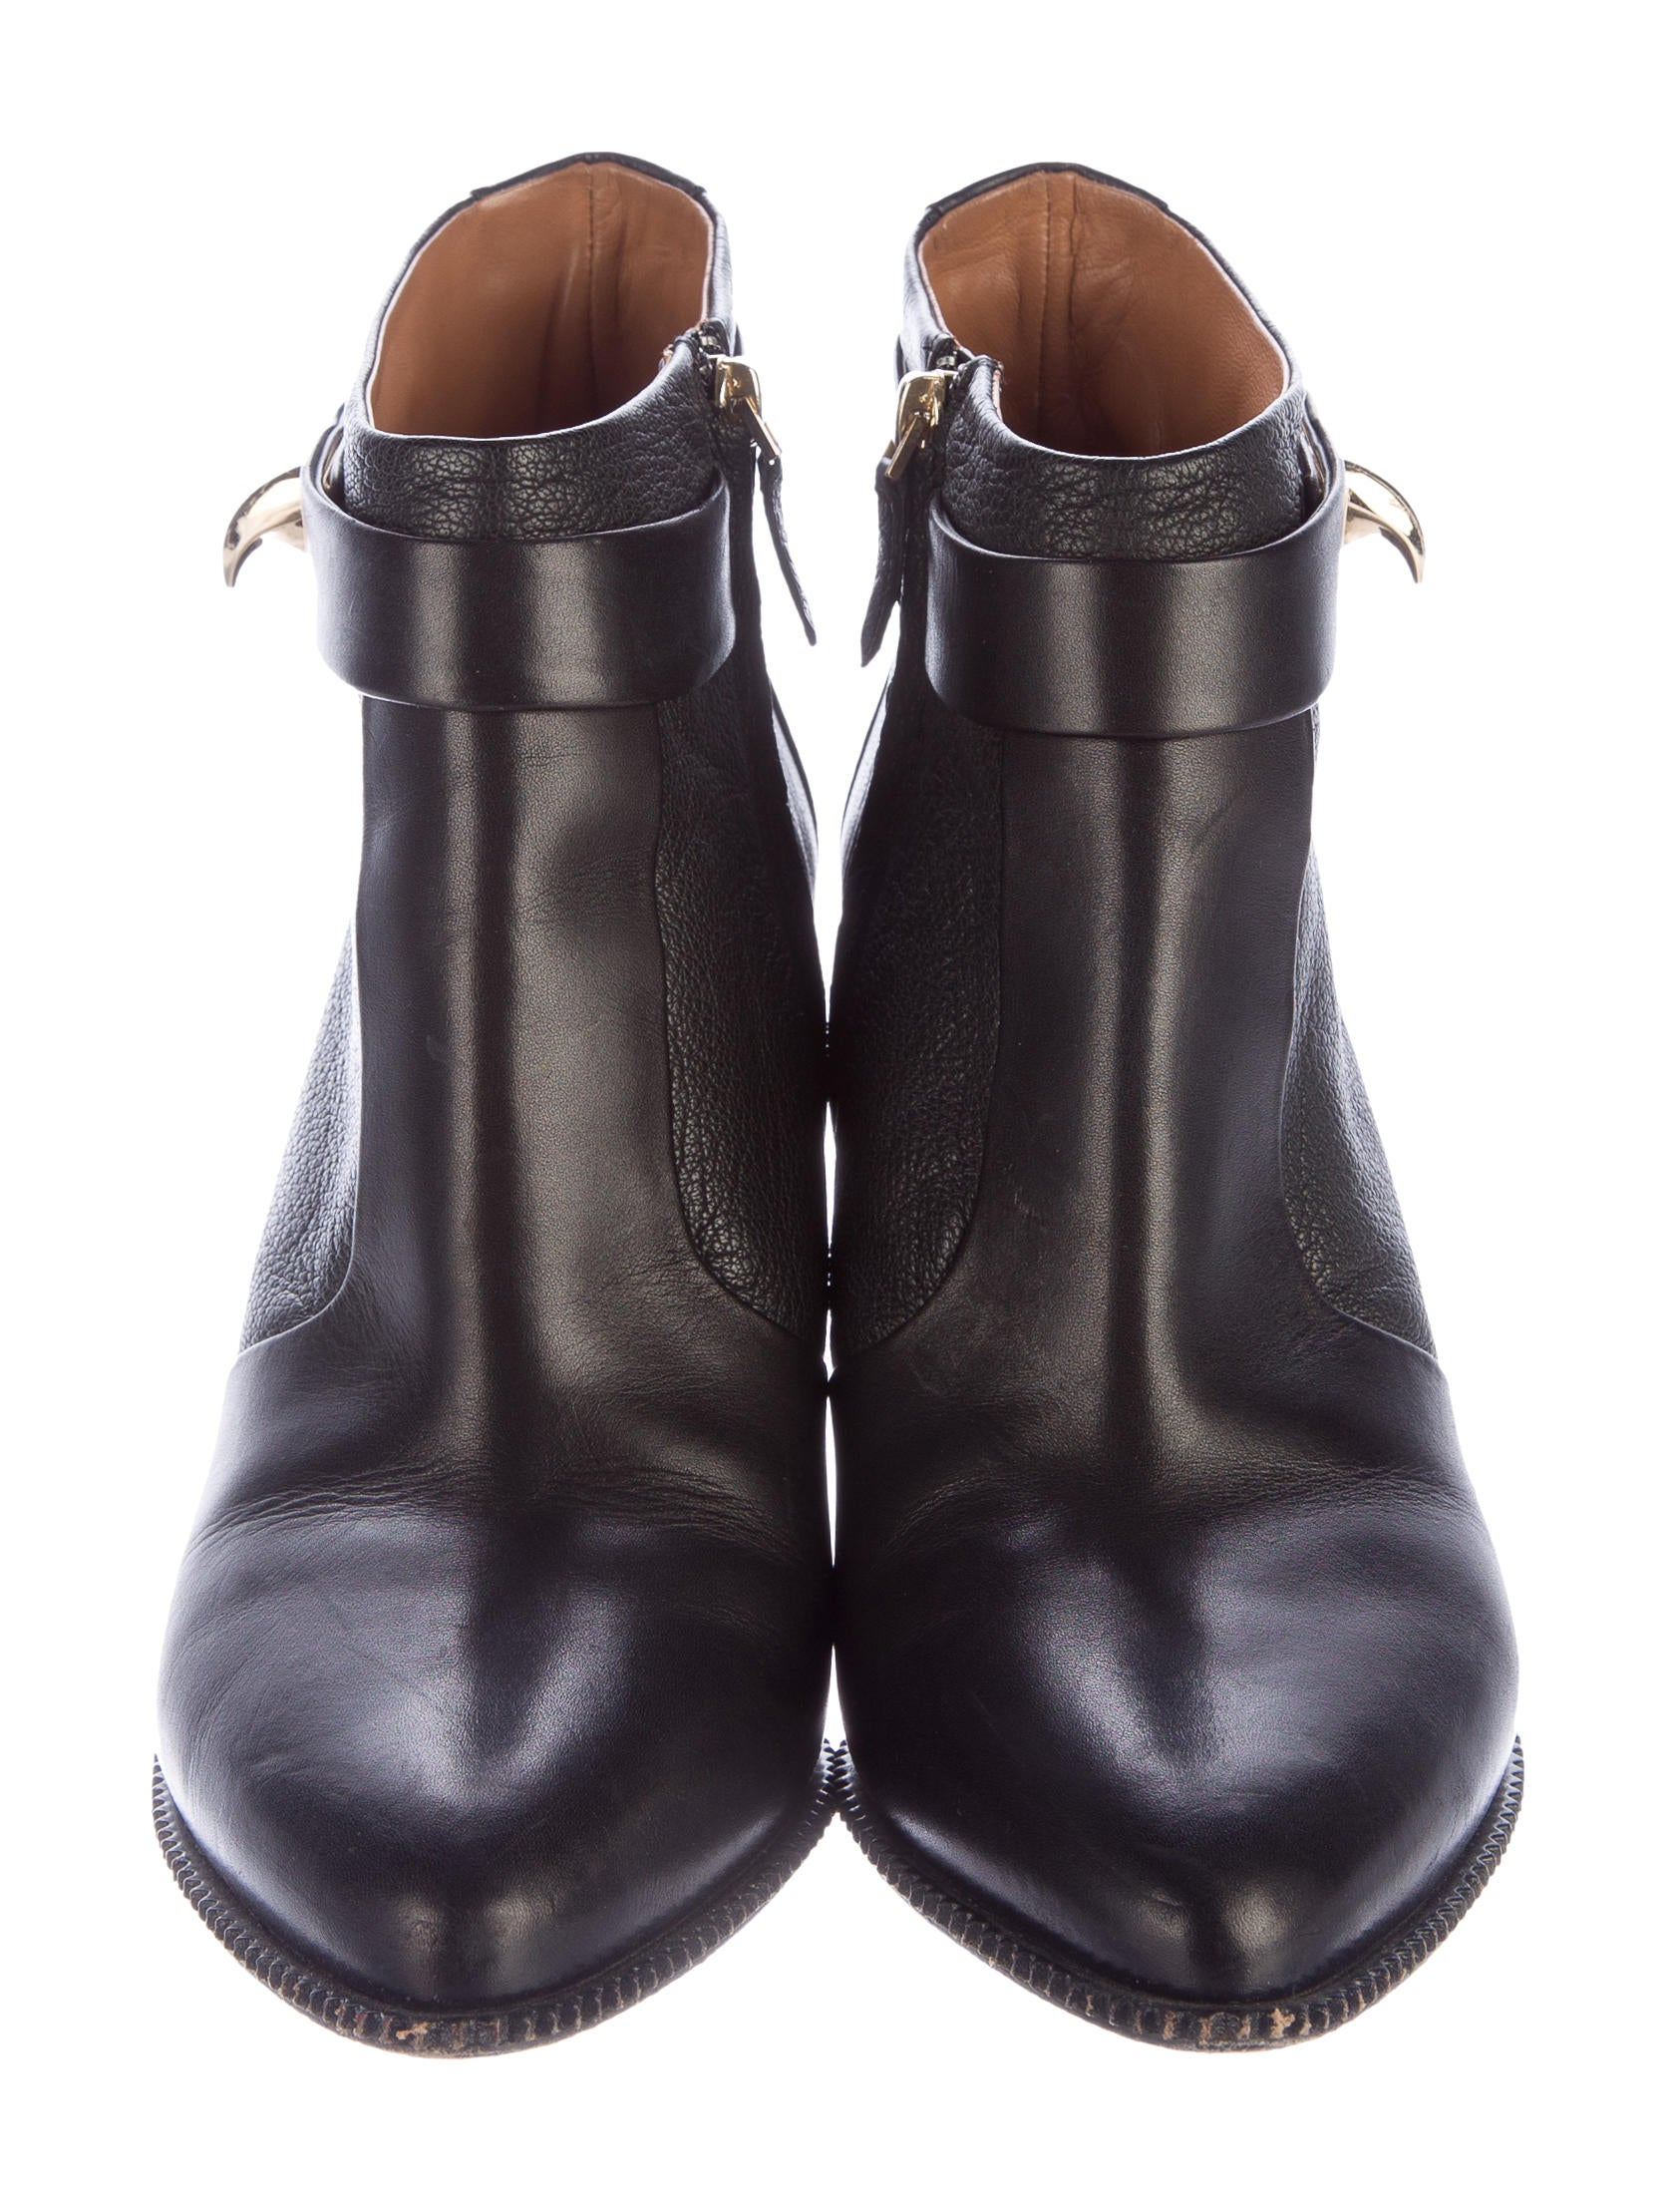 givenchy shark lock leather ankle boots shoes giv38205